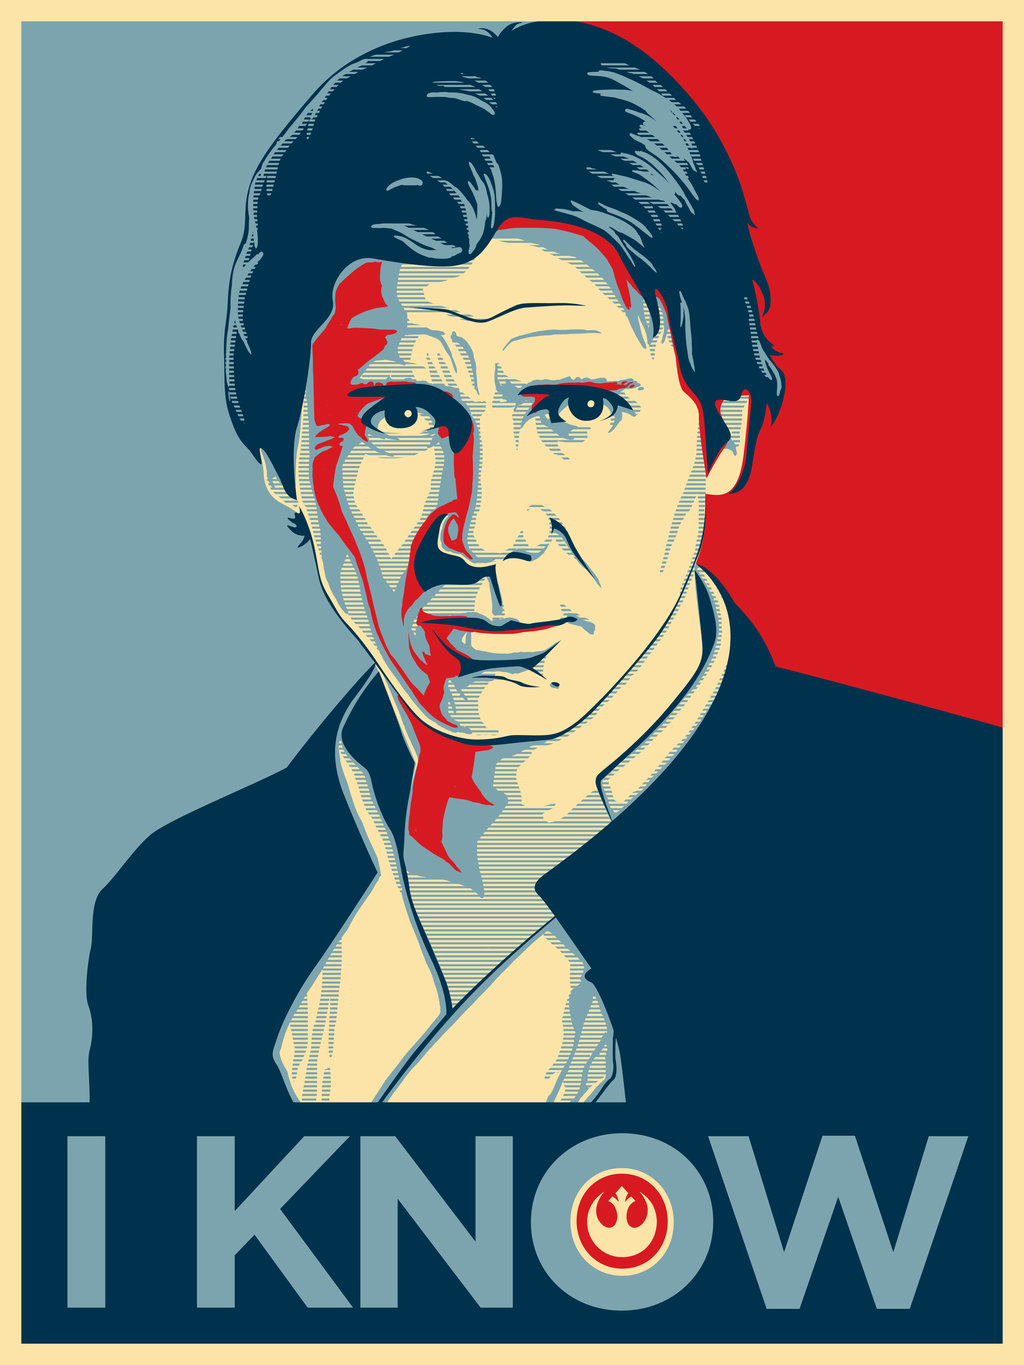 han_solo_by_rohanvoigt-d76srhe.jpg